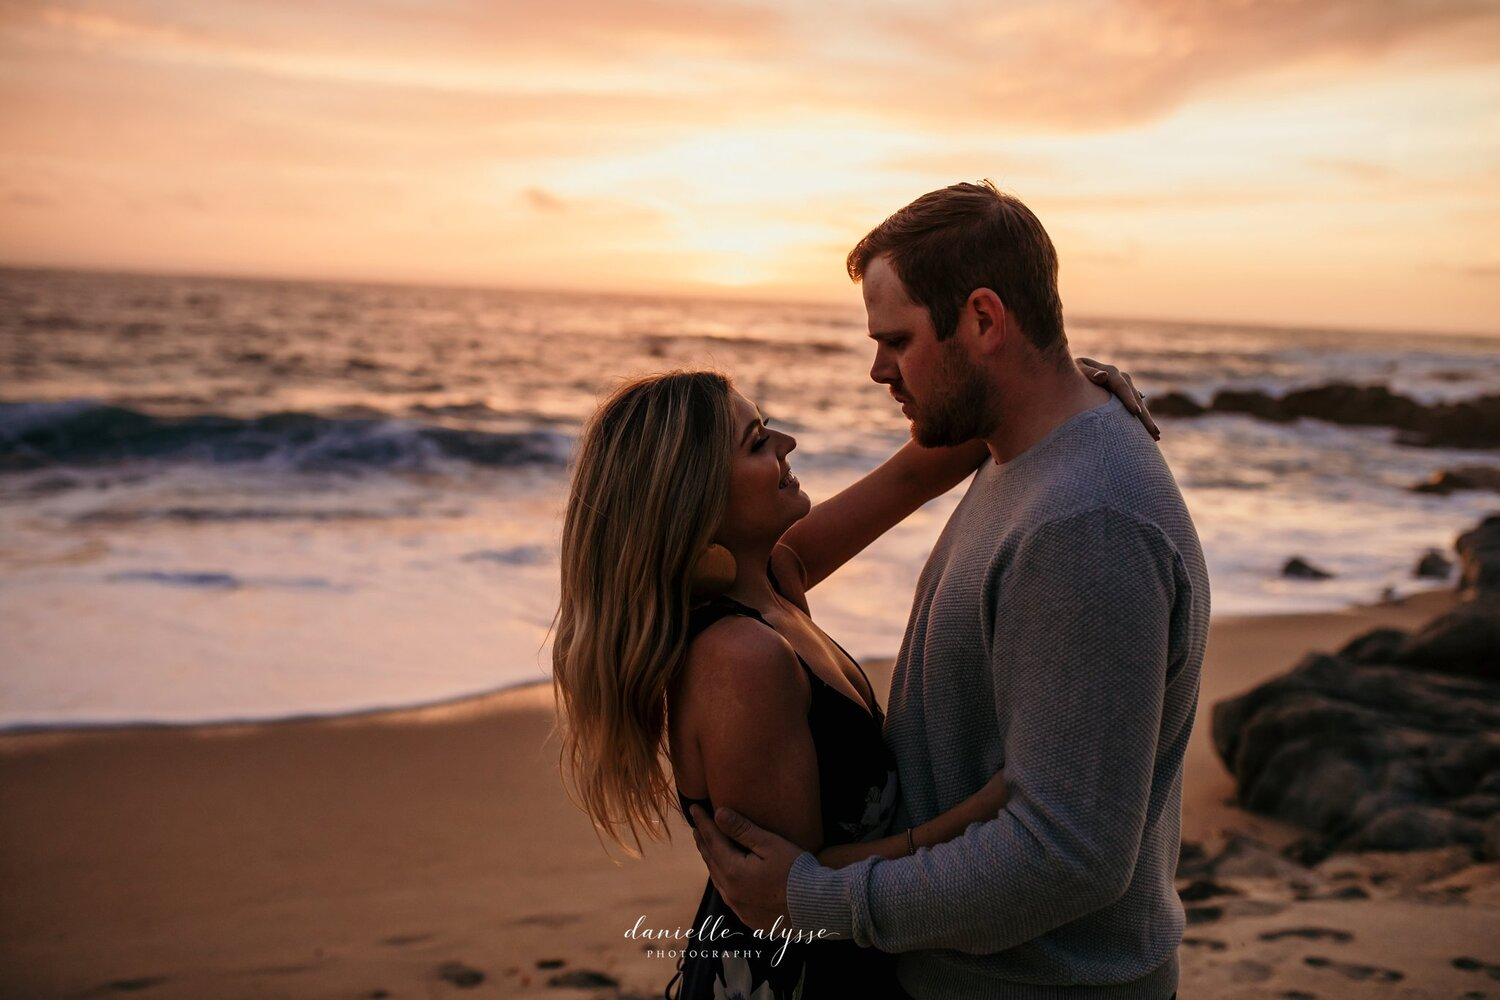 190413_engagement_kenna_carmel_monterey_danielle_alysse_photography_0076_WEB.jpg